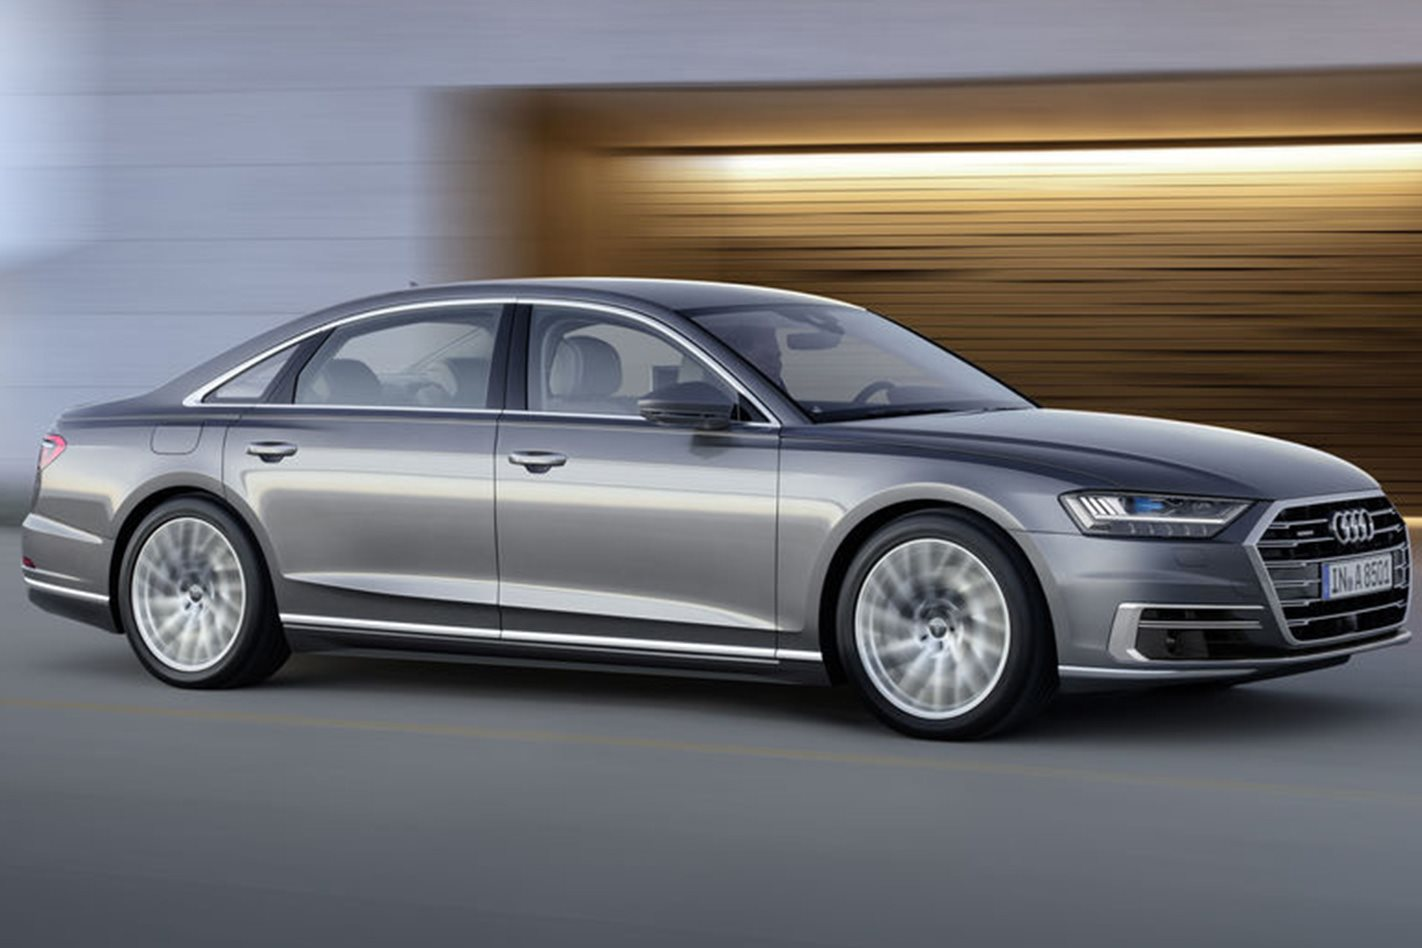 2018 Audi A8 side profile